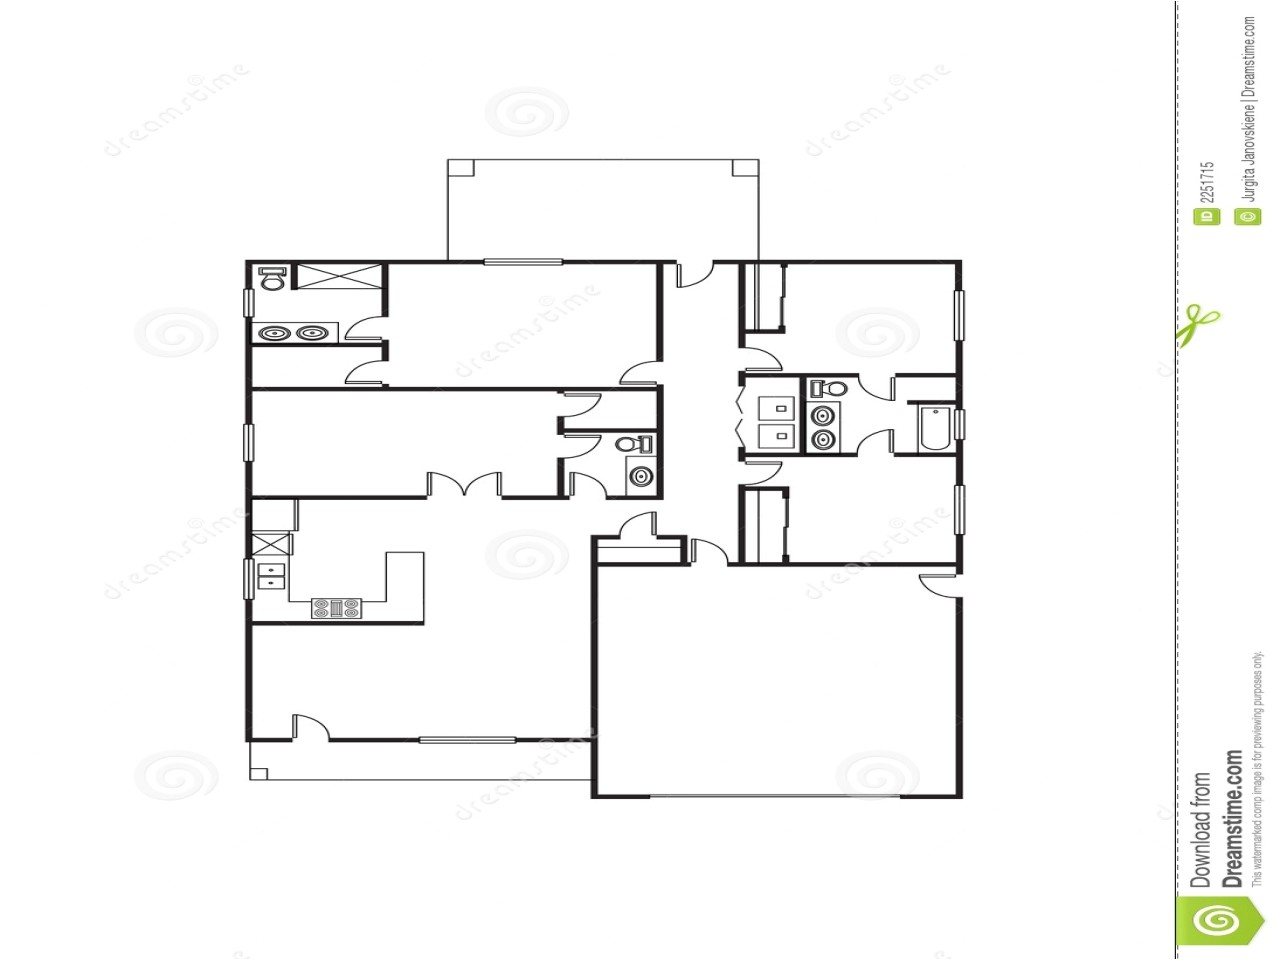 2978a7698c574d6f single family house plans free single floor house plans large rooms